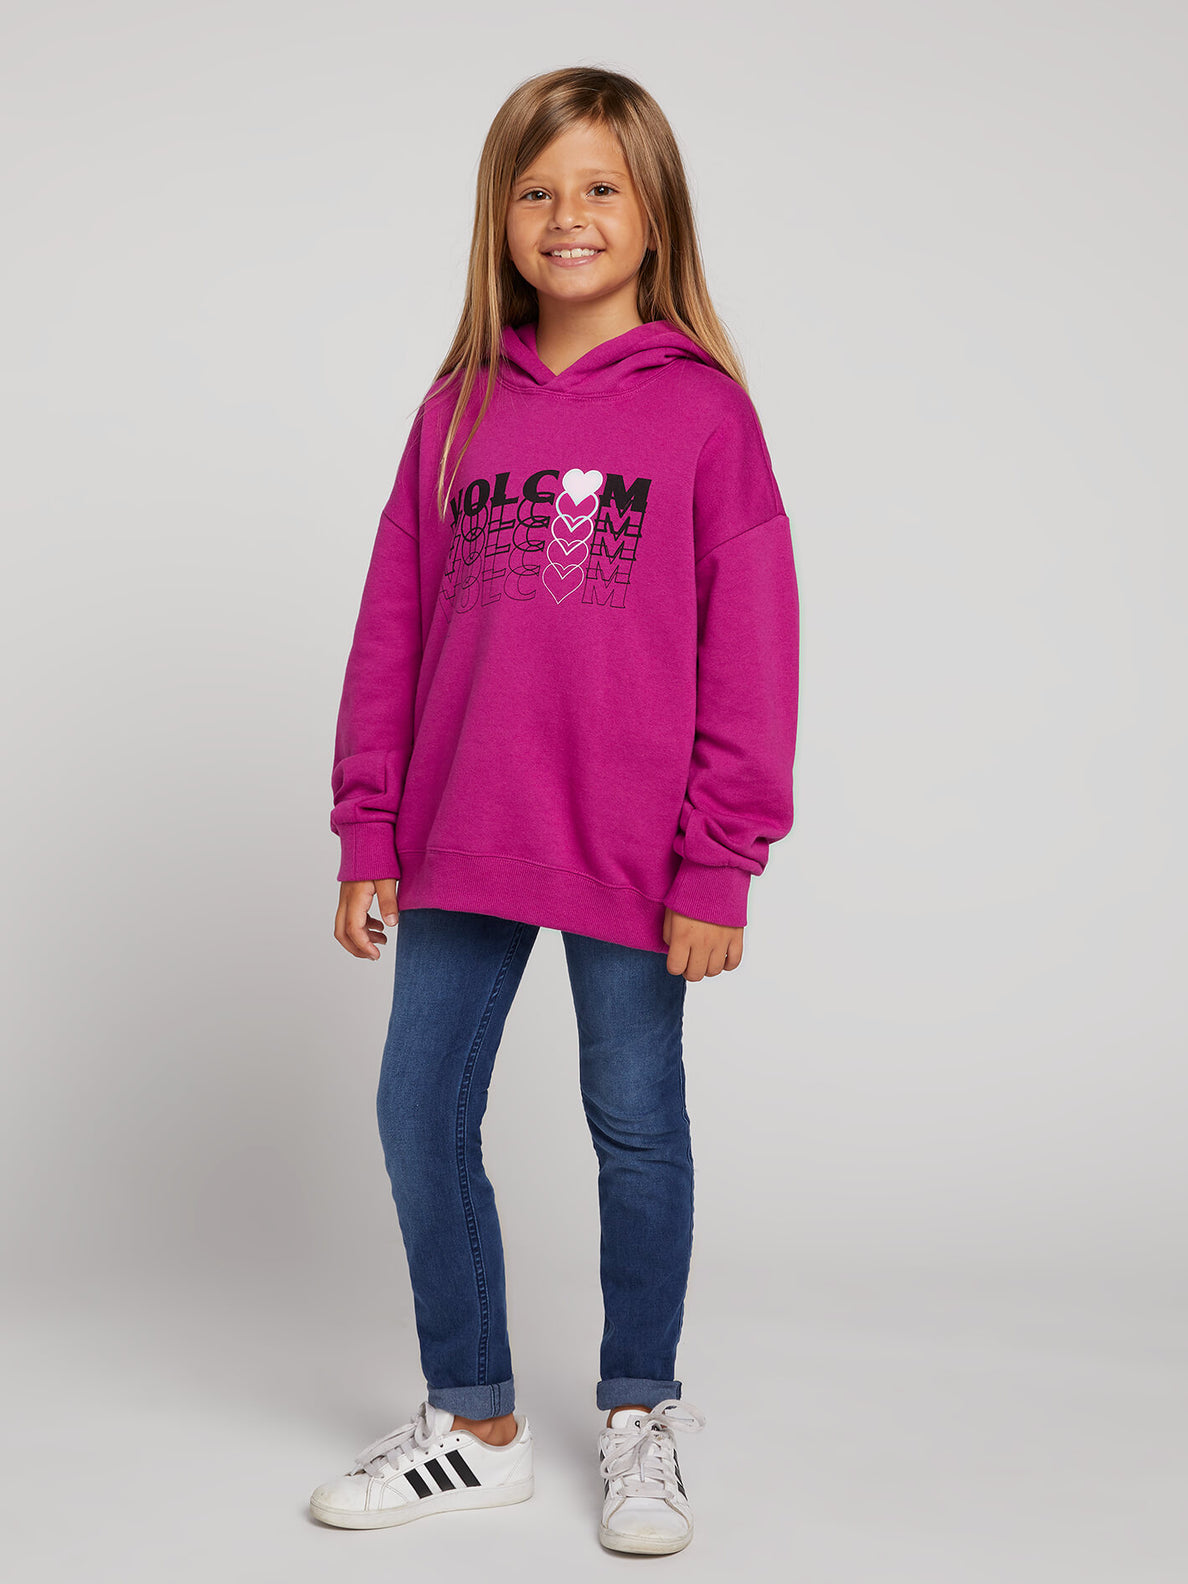 Big Girls Knew Wave Hoodie In Paradise Purple, Front View